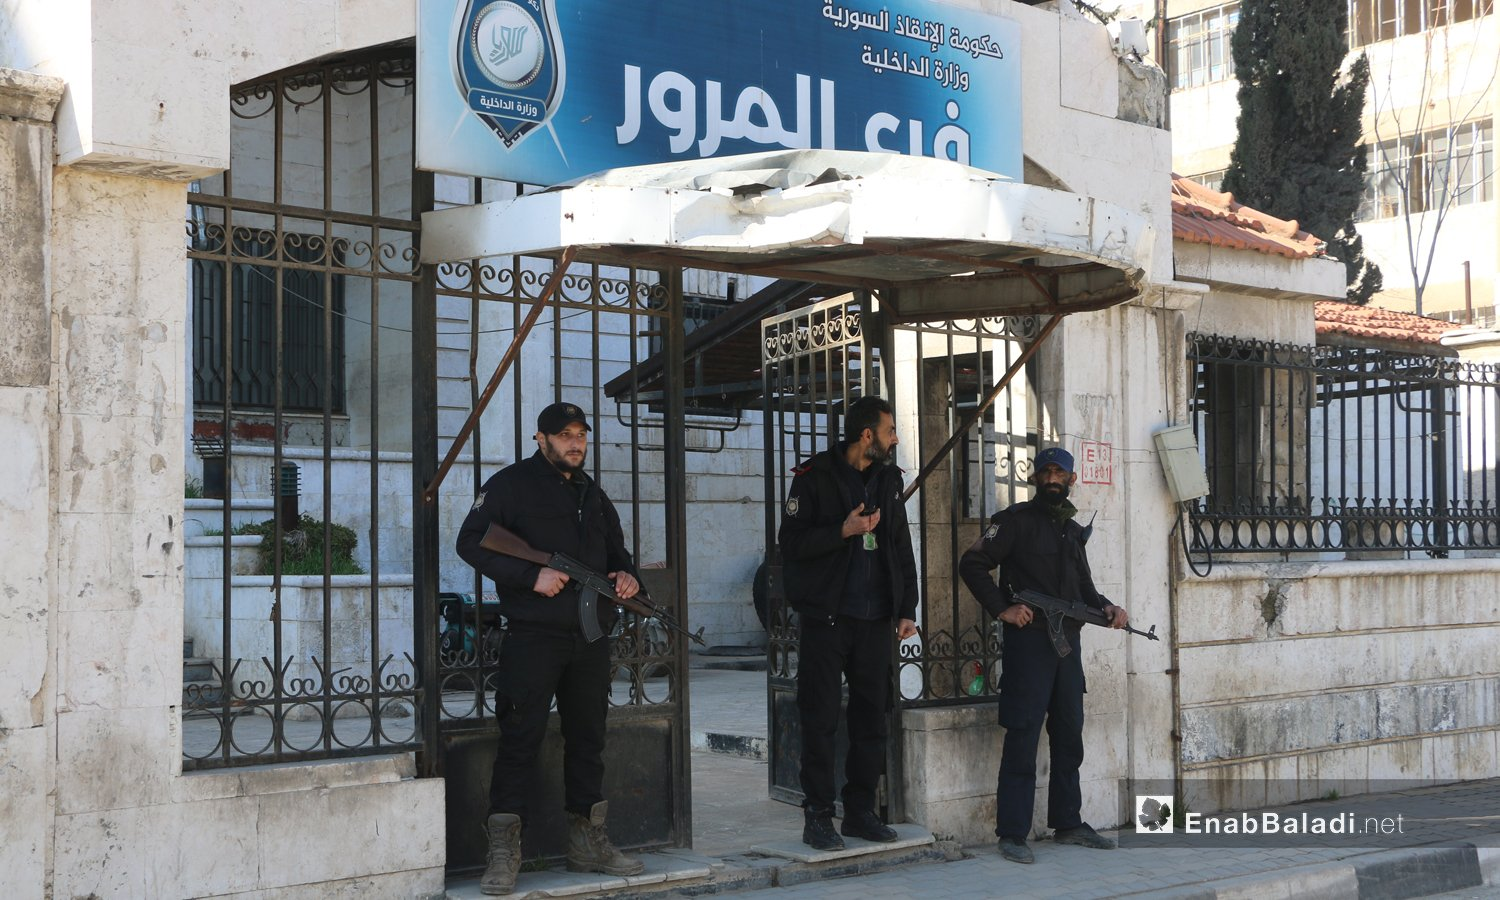 Traffic Police Department, affiliated with the Ministry of Interior of the Salvation Government — 6 February 20121 (Enab Baladi/Anass al-Khouli)